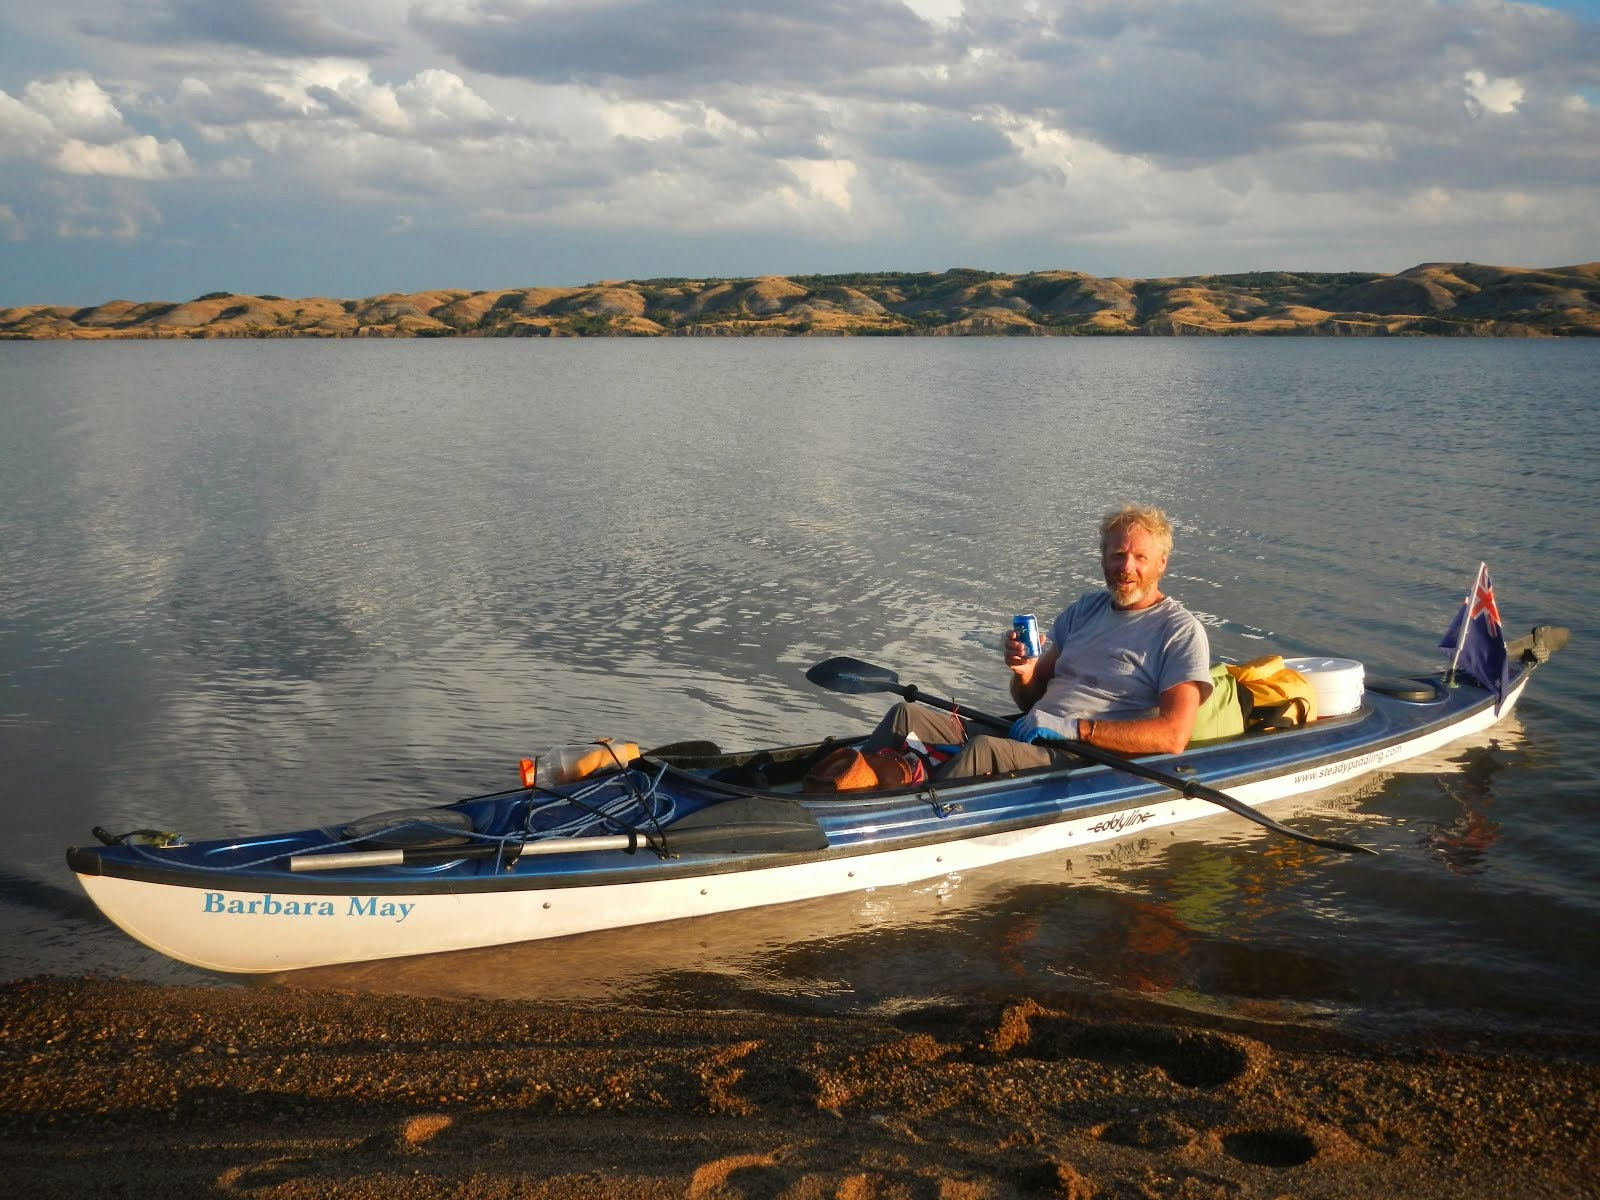 2012 - Paddling the Missouri River